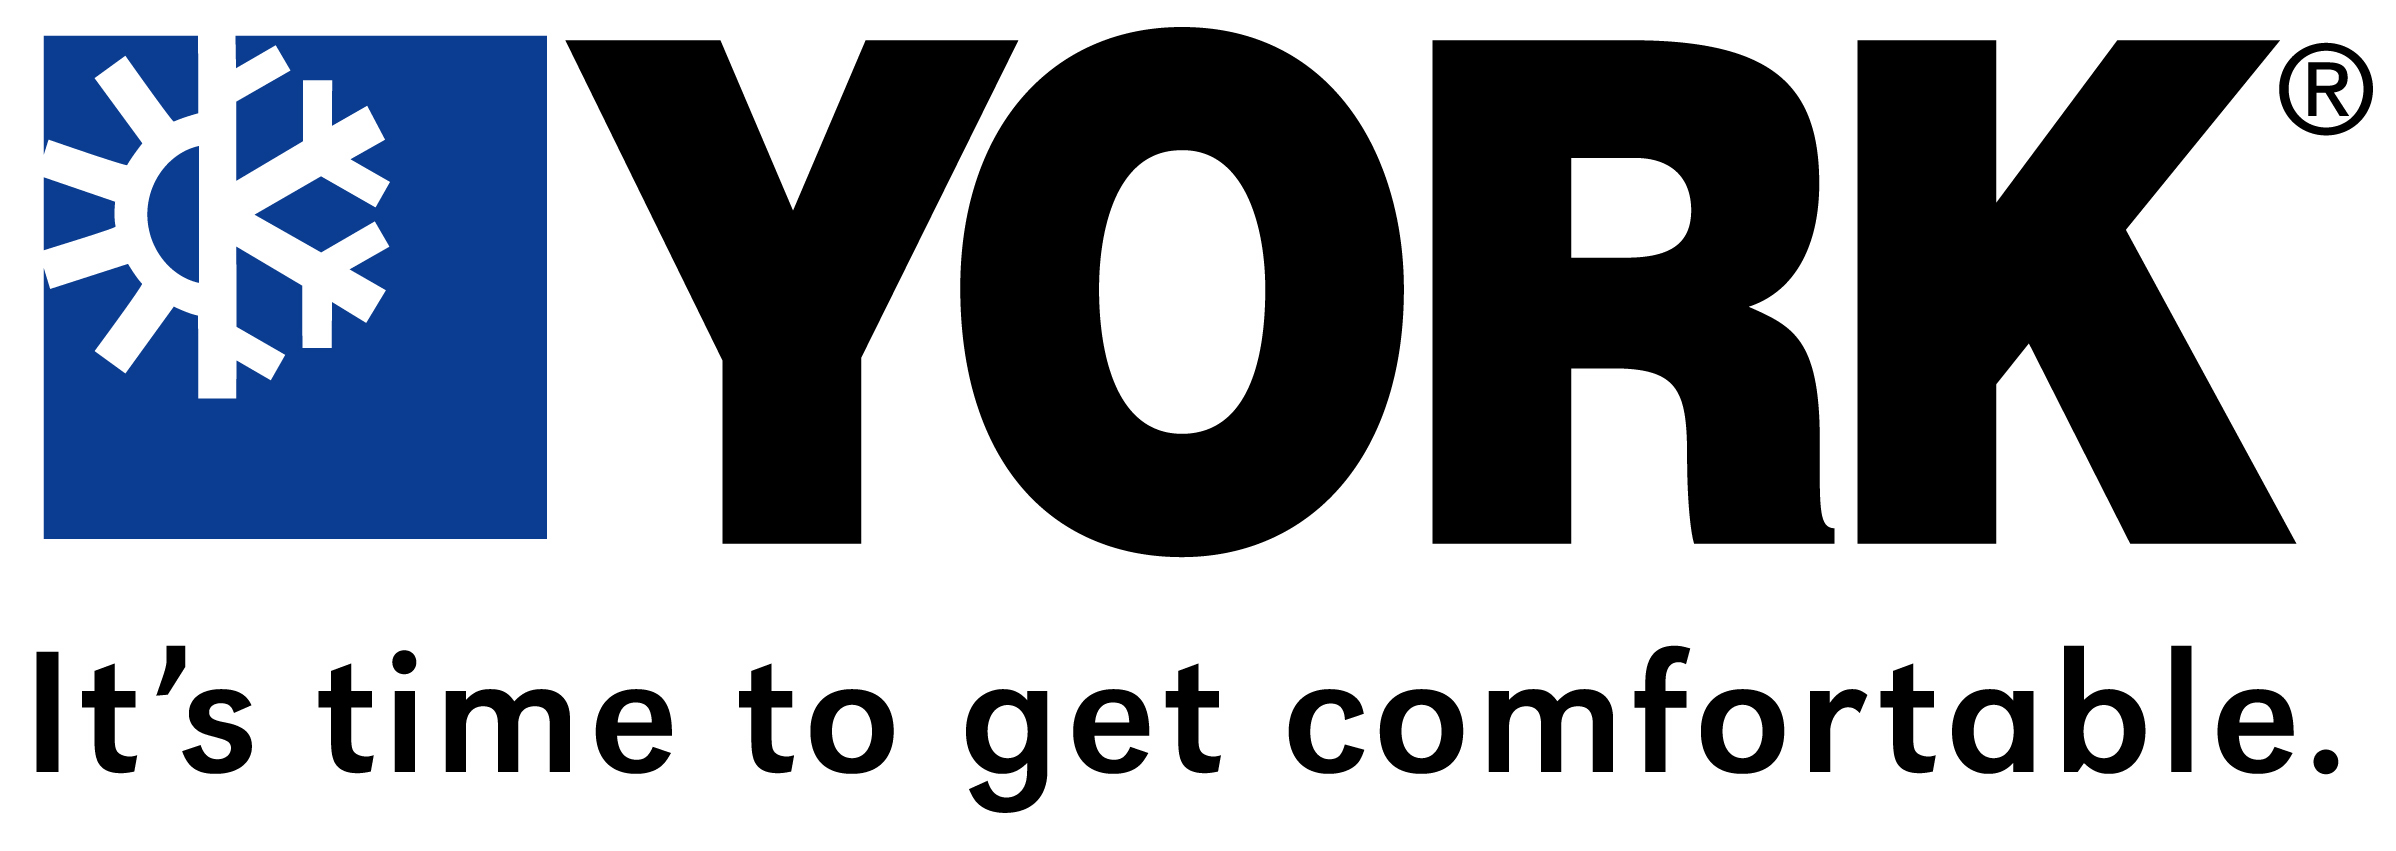 York Air Conditioning logo